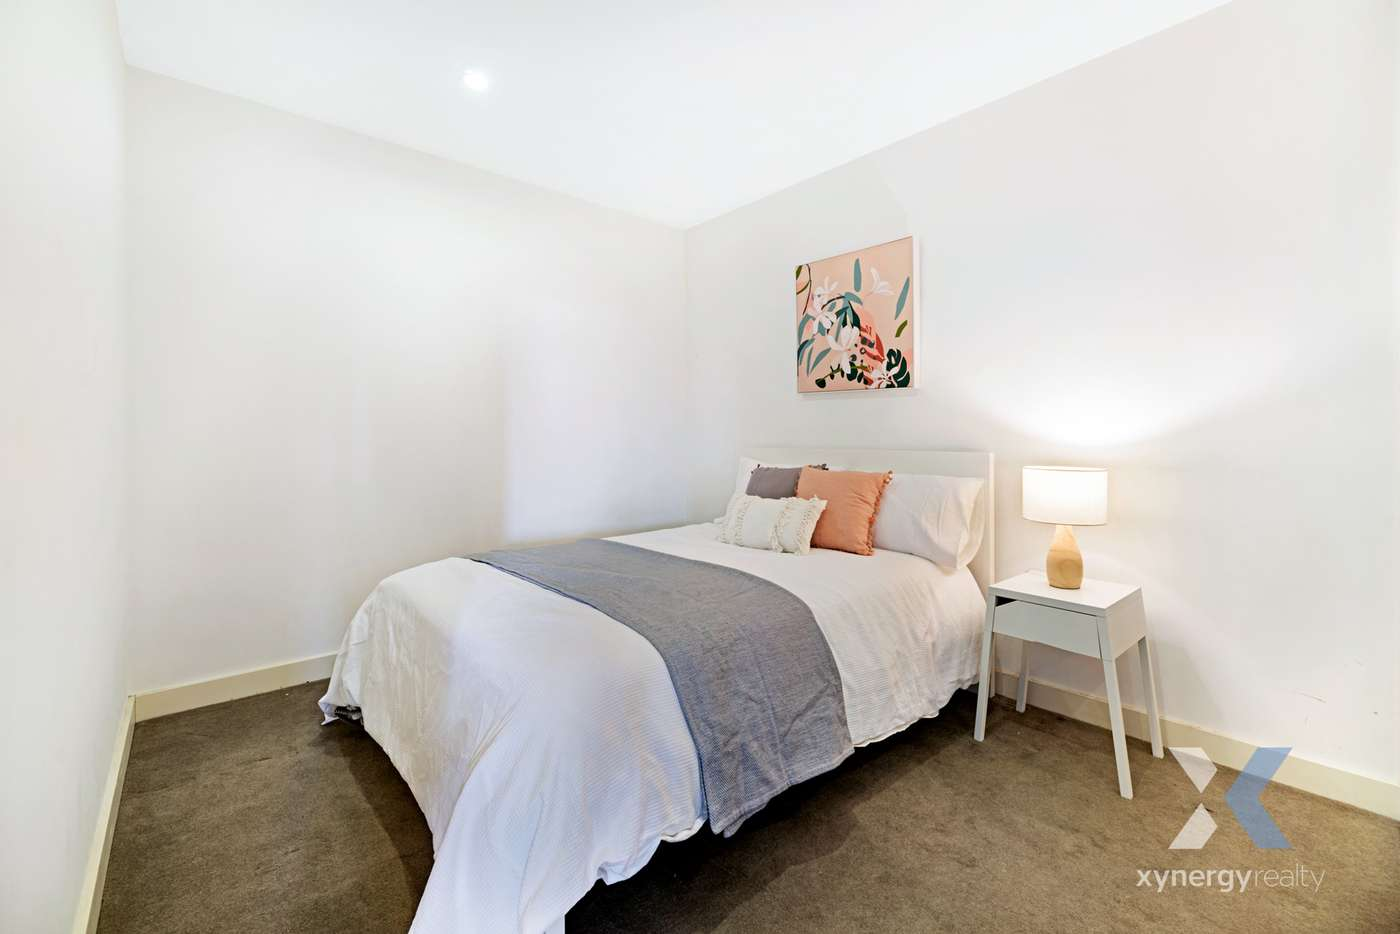 Sixth view of Homely apartment listing, 611/35 Malcolm Street, South Yarra VIC 3141